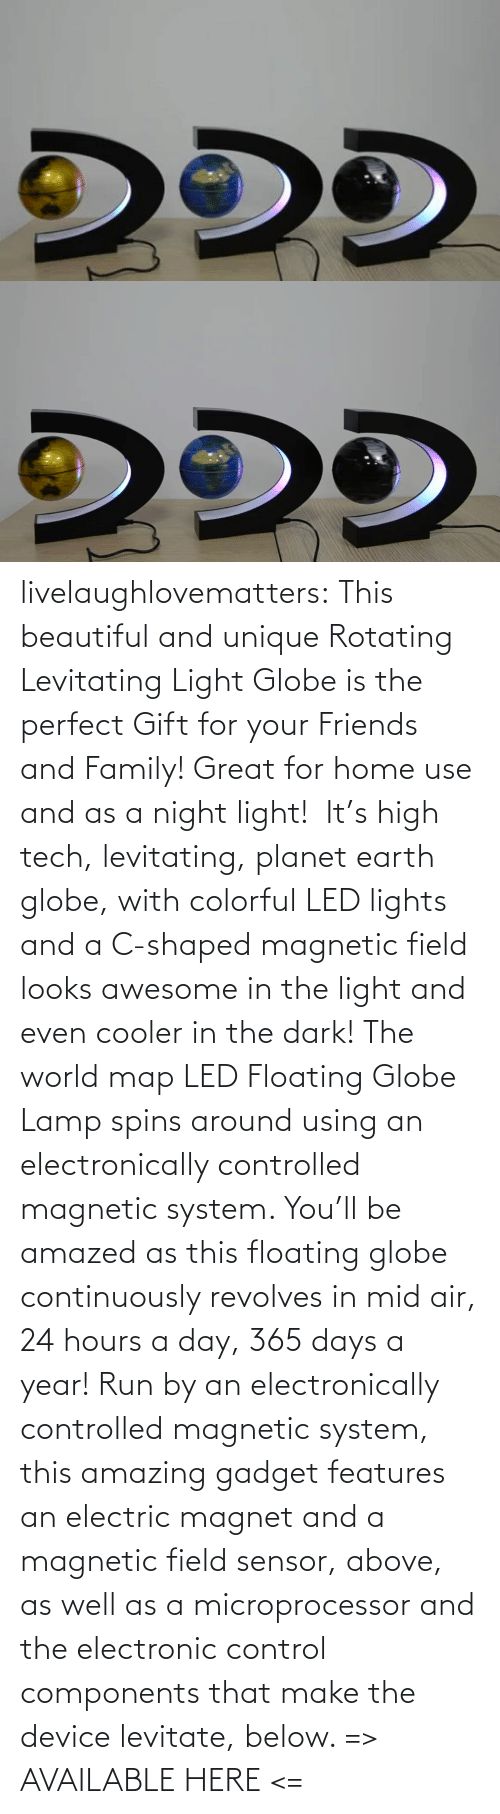 map: livelaughlovematters: This beautiful and unique Rotating Levitating Light Globe is the perfect Gift for your Friends and Family! Great for home use and as a night light!  It's high tech, levitating, planet earth globe, with colorful LED lights and a C-shaped magnetic field looks awesome in the light and even cooler in the dark! The world map LED Floating Globe Lamp spins around using an electronically controlled magnetic system.  You'll be amazed as this floating globe continuously revolves in mid air, 24 hours a day, 365 days a year! Run by an electronically controlled magnetic system, this amazing gadget features an electric magnet and a magnetic field sensor, above, as well as a microprocessor and the electronic control components that make the device levitate, below.  => AVAILABLE HERE <=